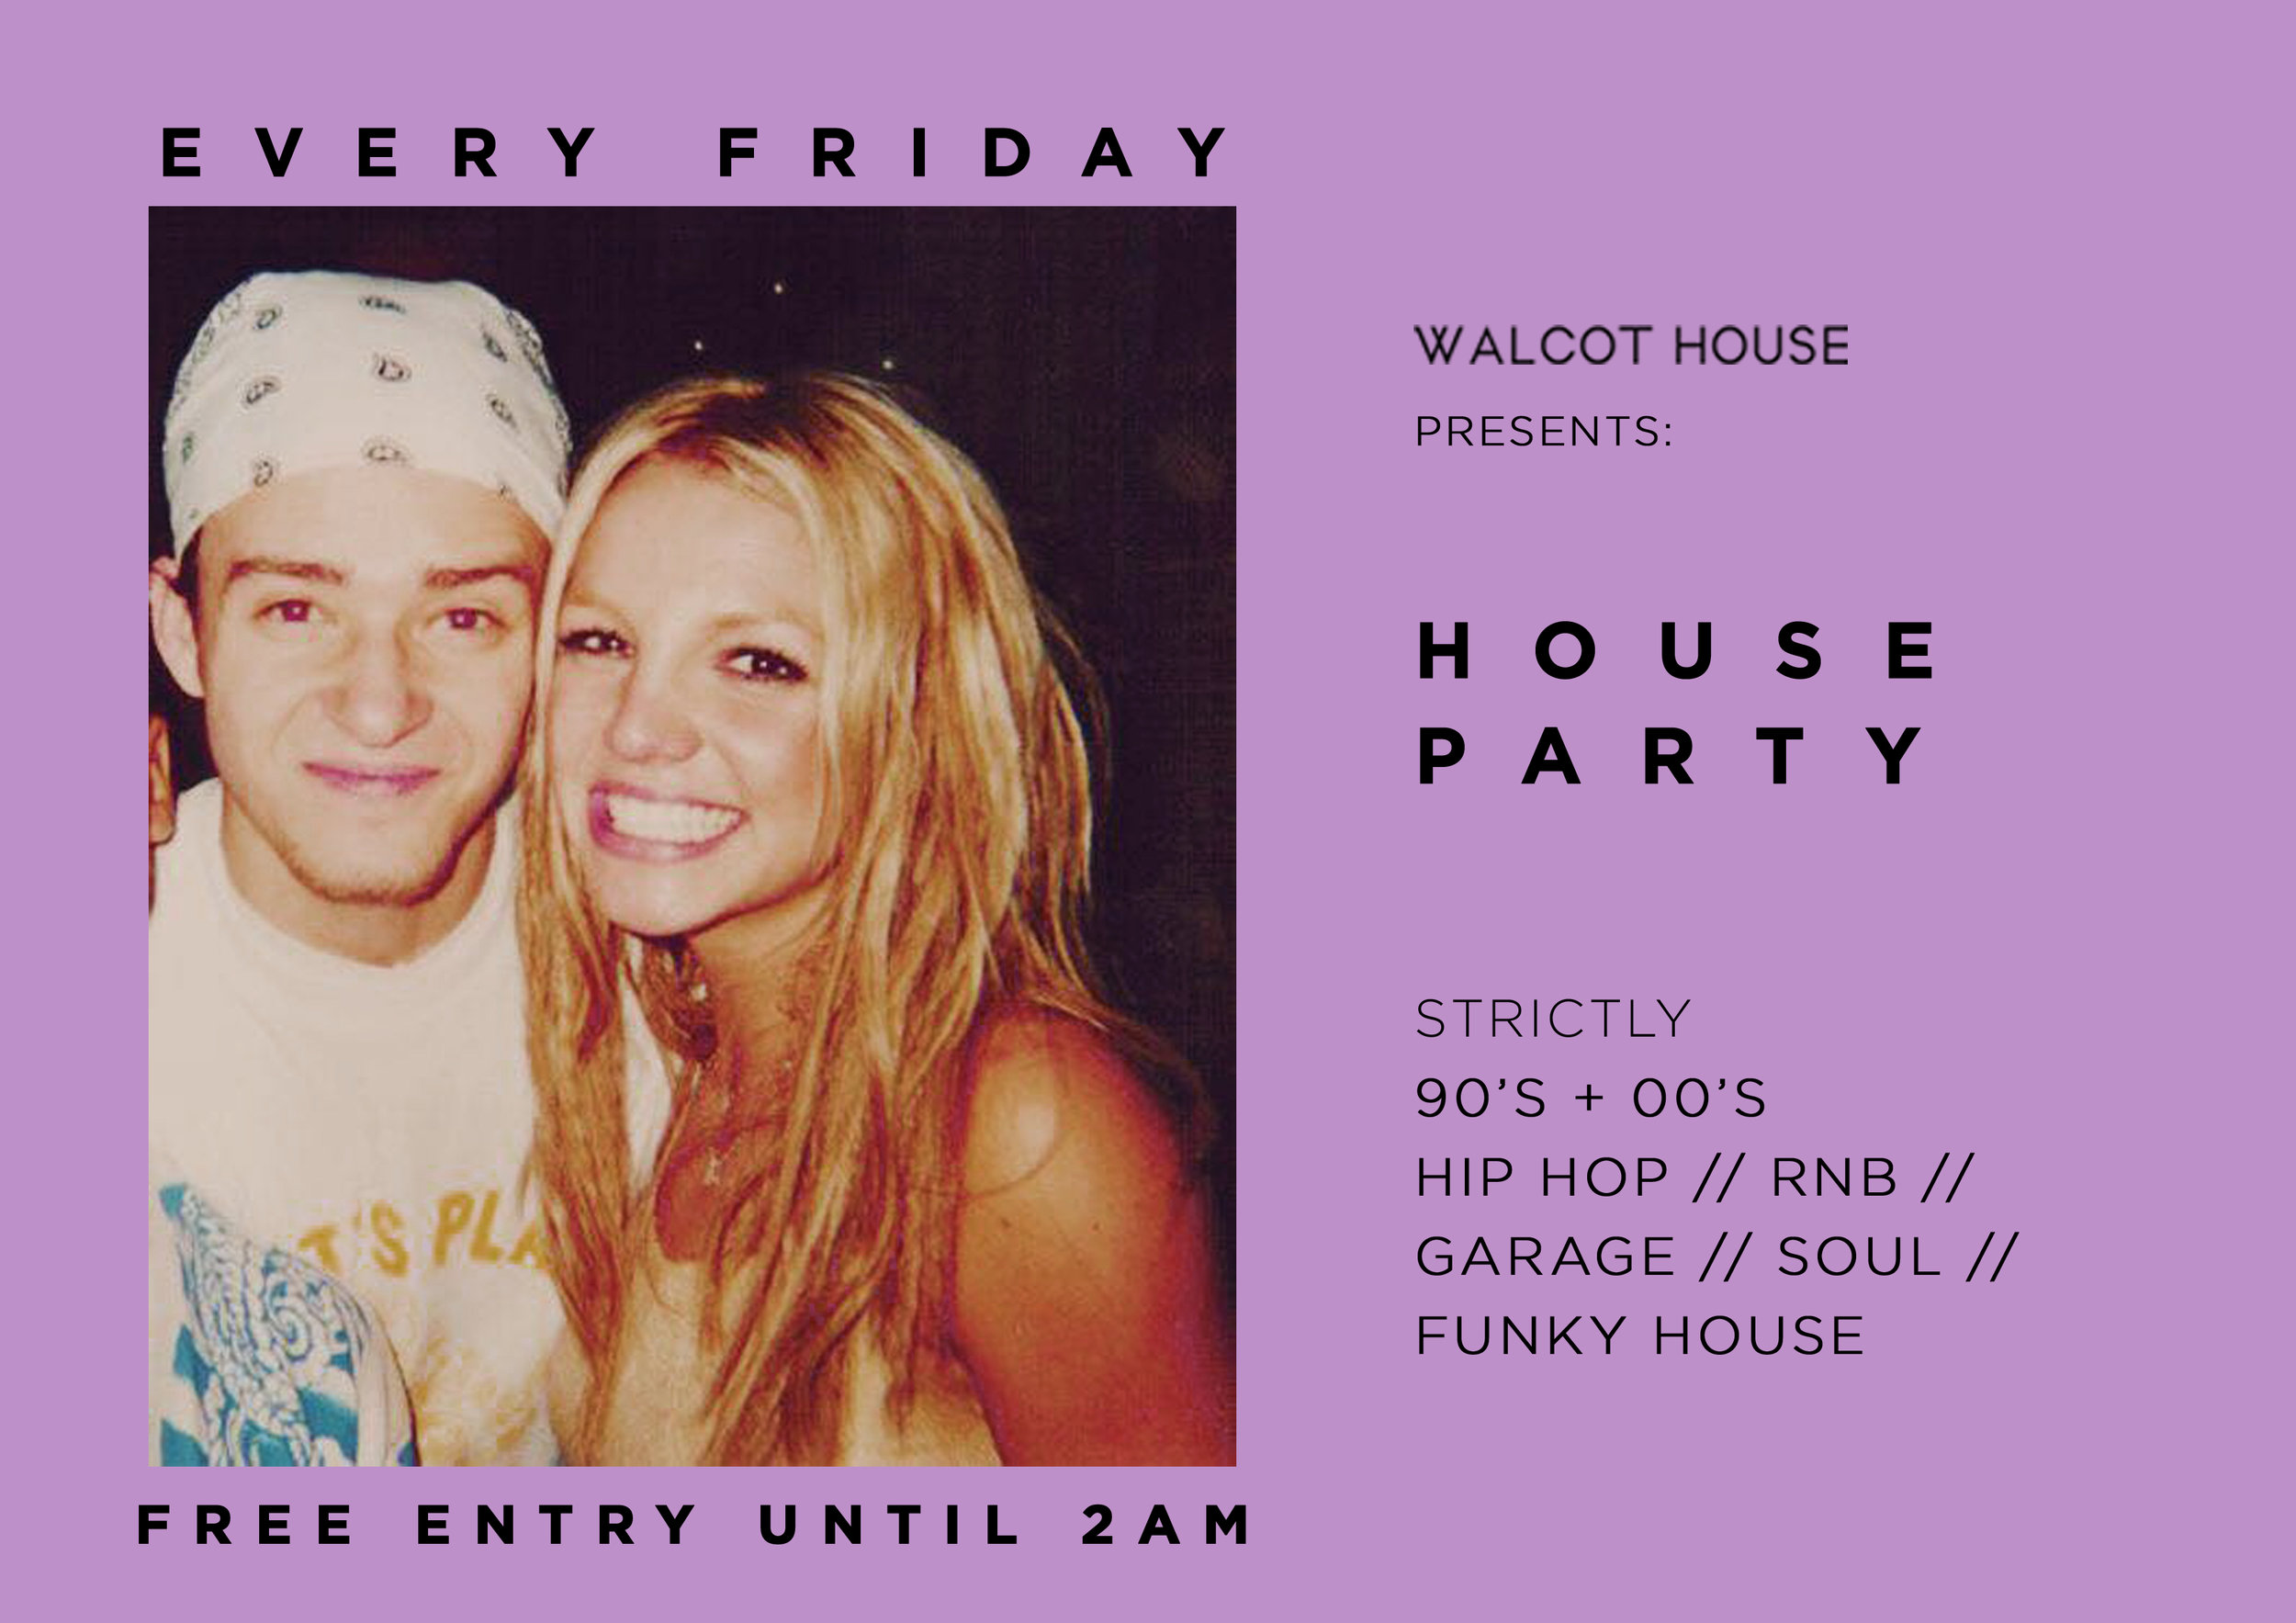 HOUSE PARTY FLYER britney.jpg